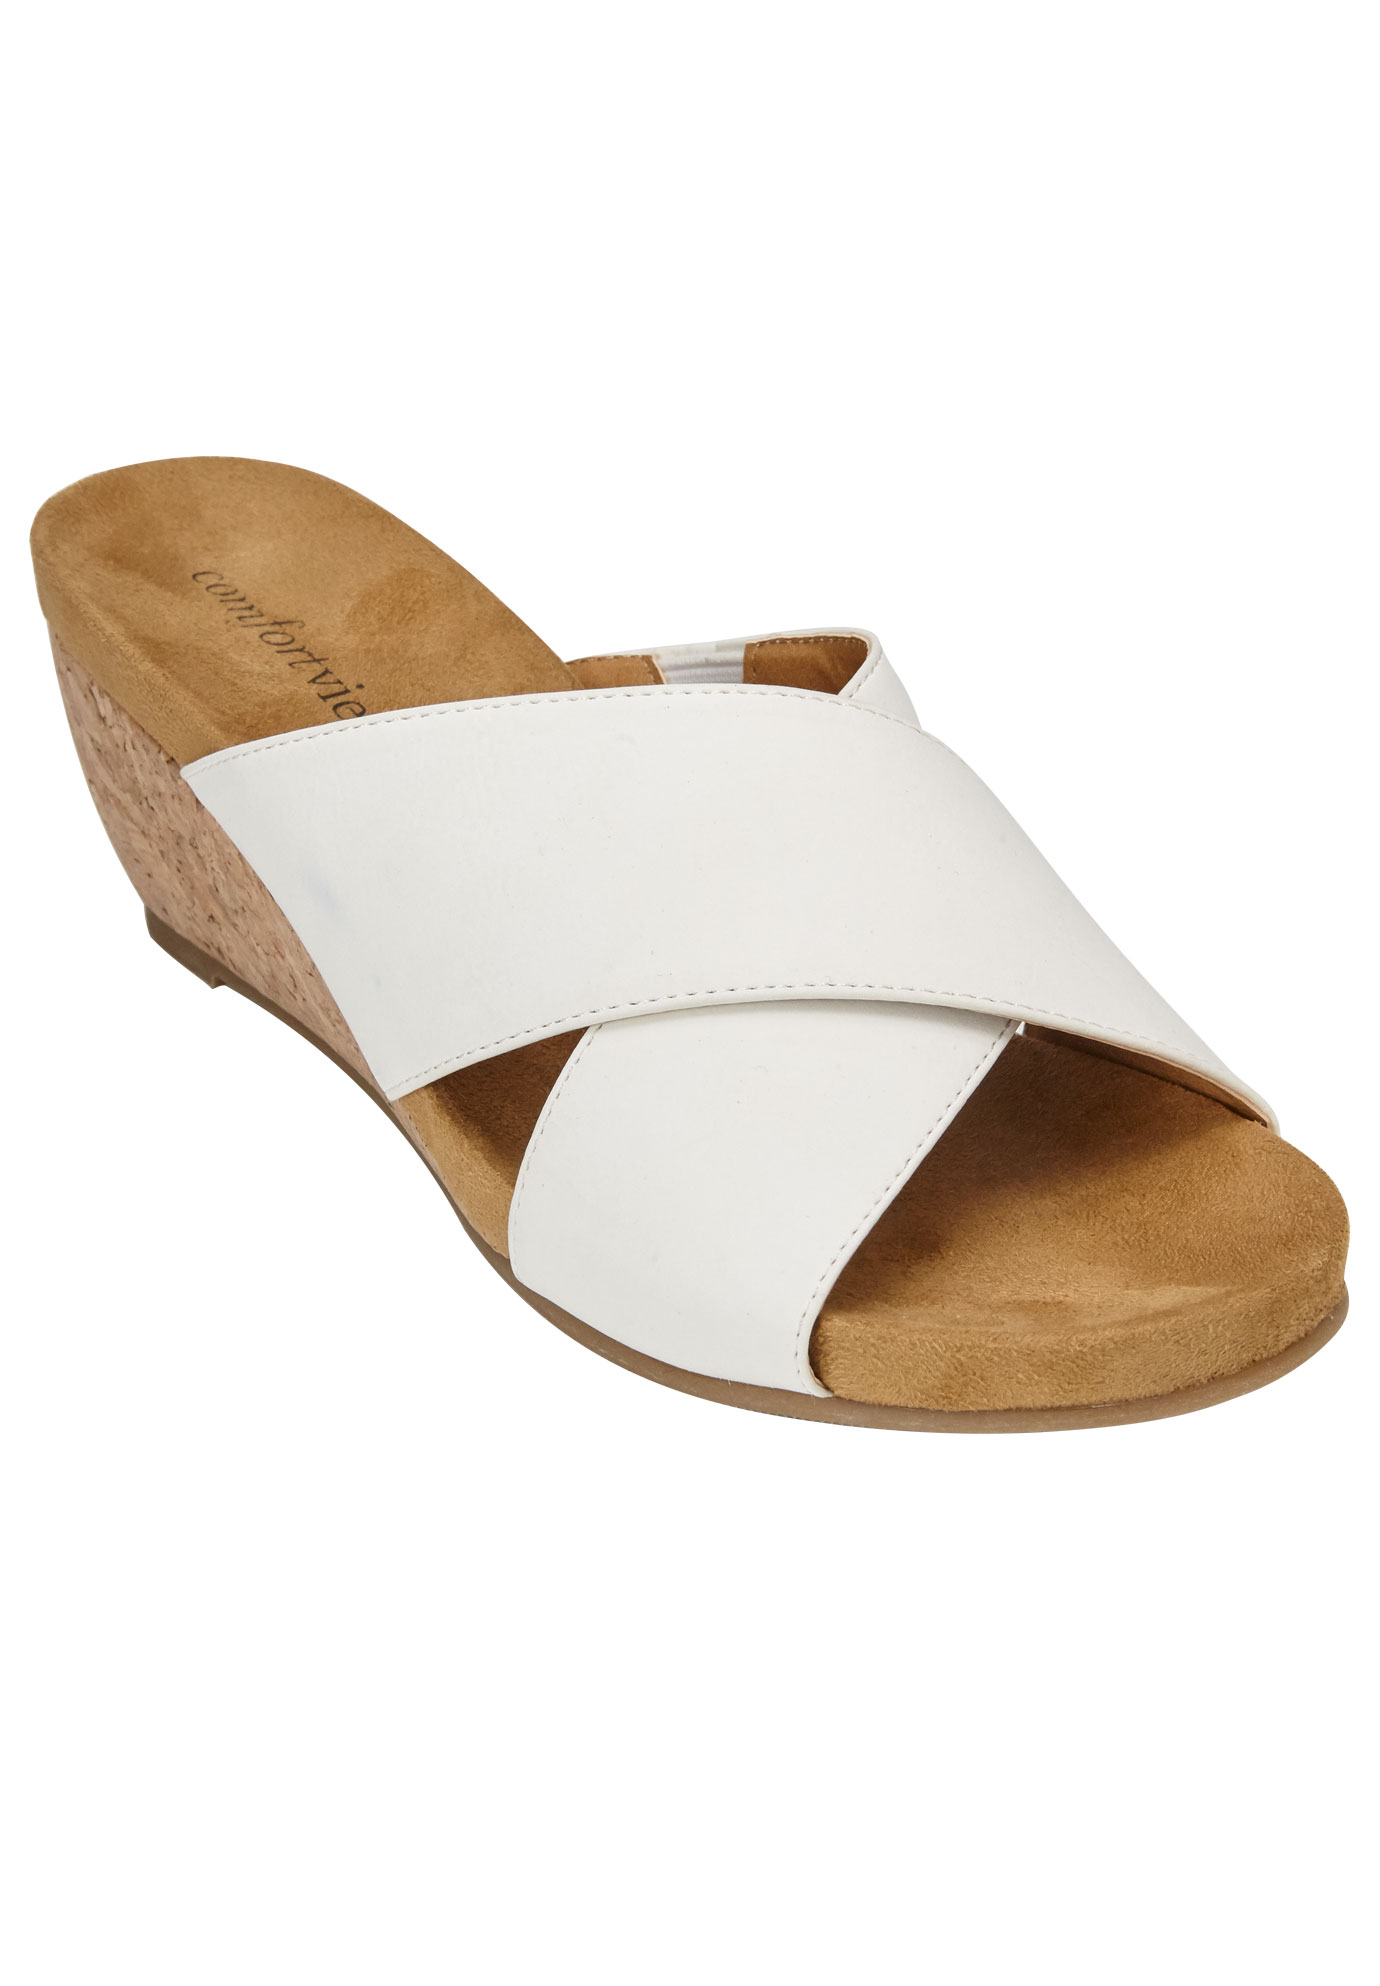 best place cheap price cheap find great Sheba Sandals by Comfortview® ebay online clearance low cost clearance cost 2yuV1